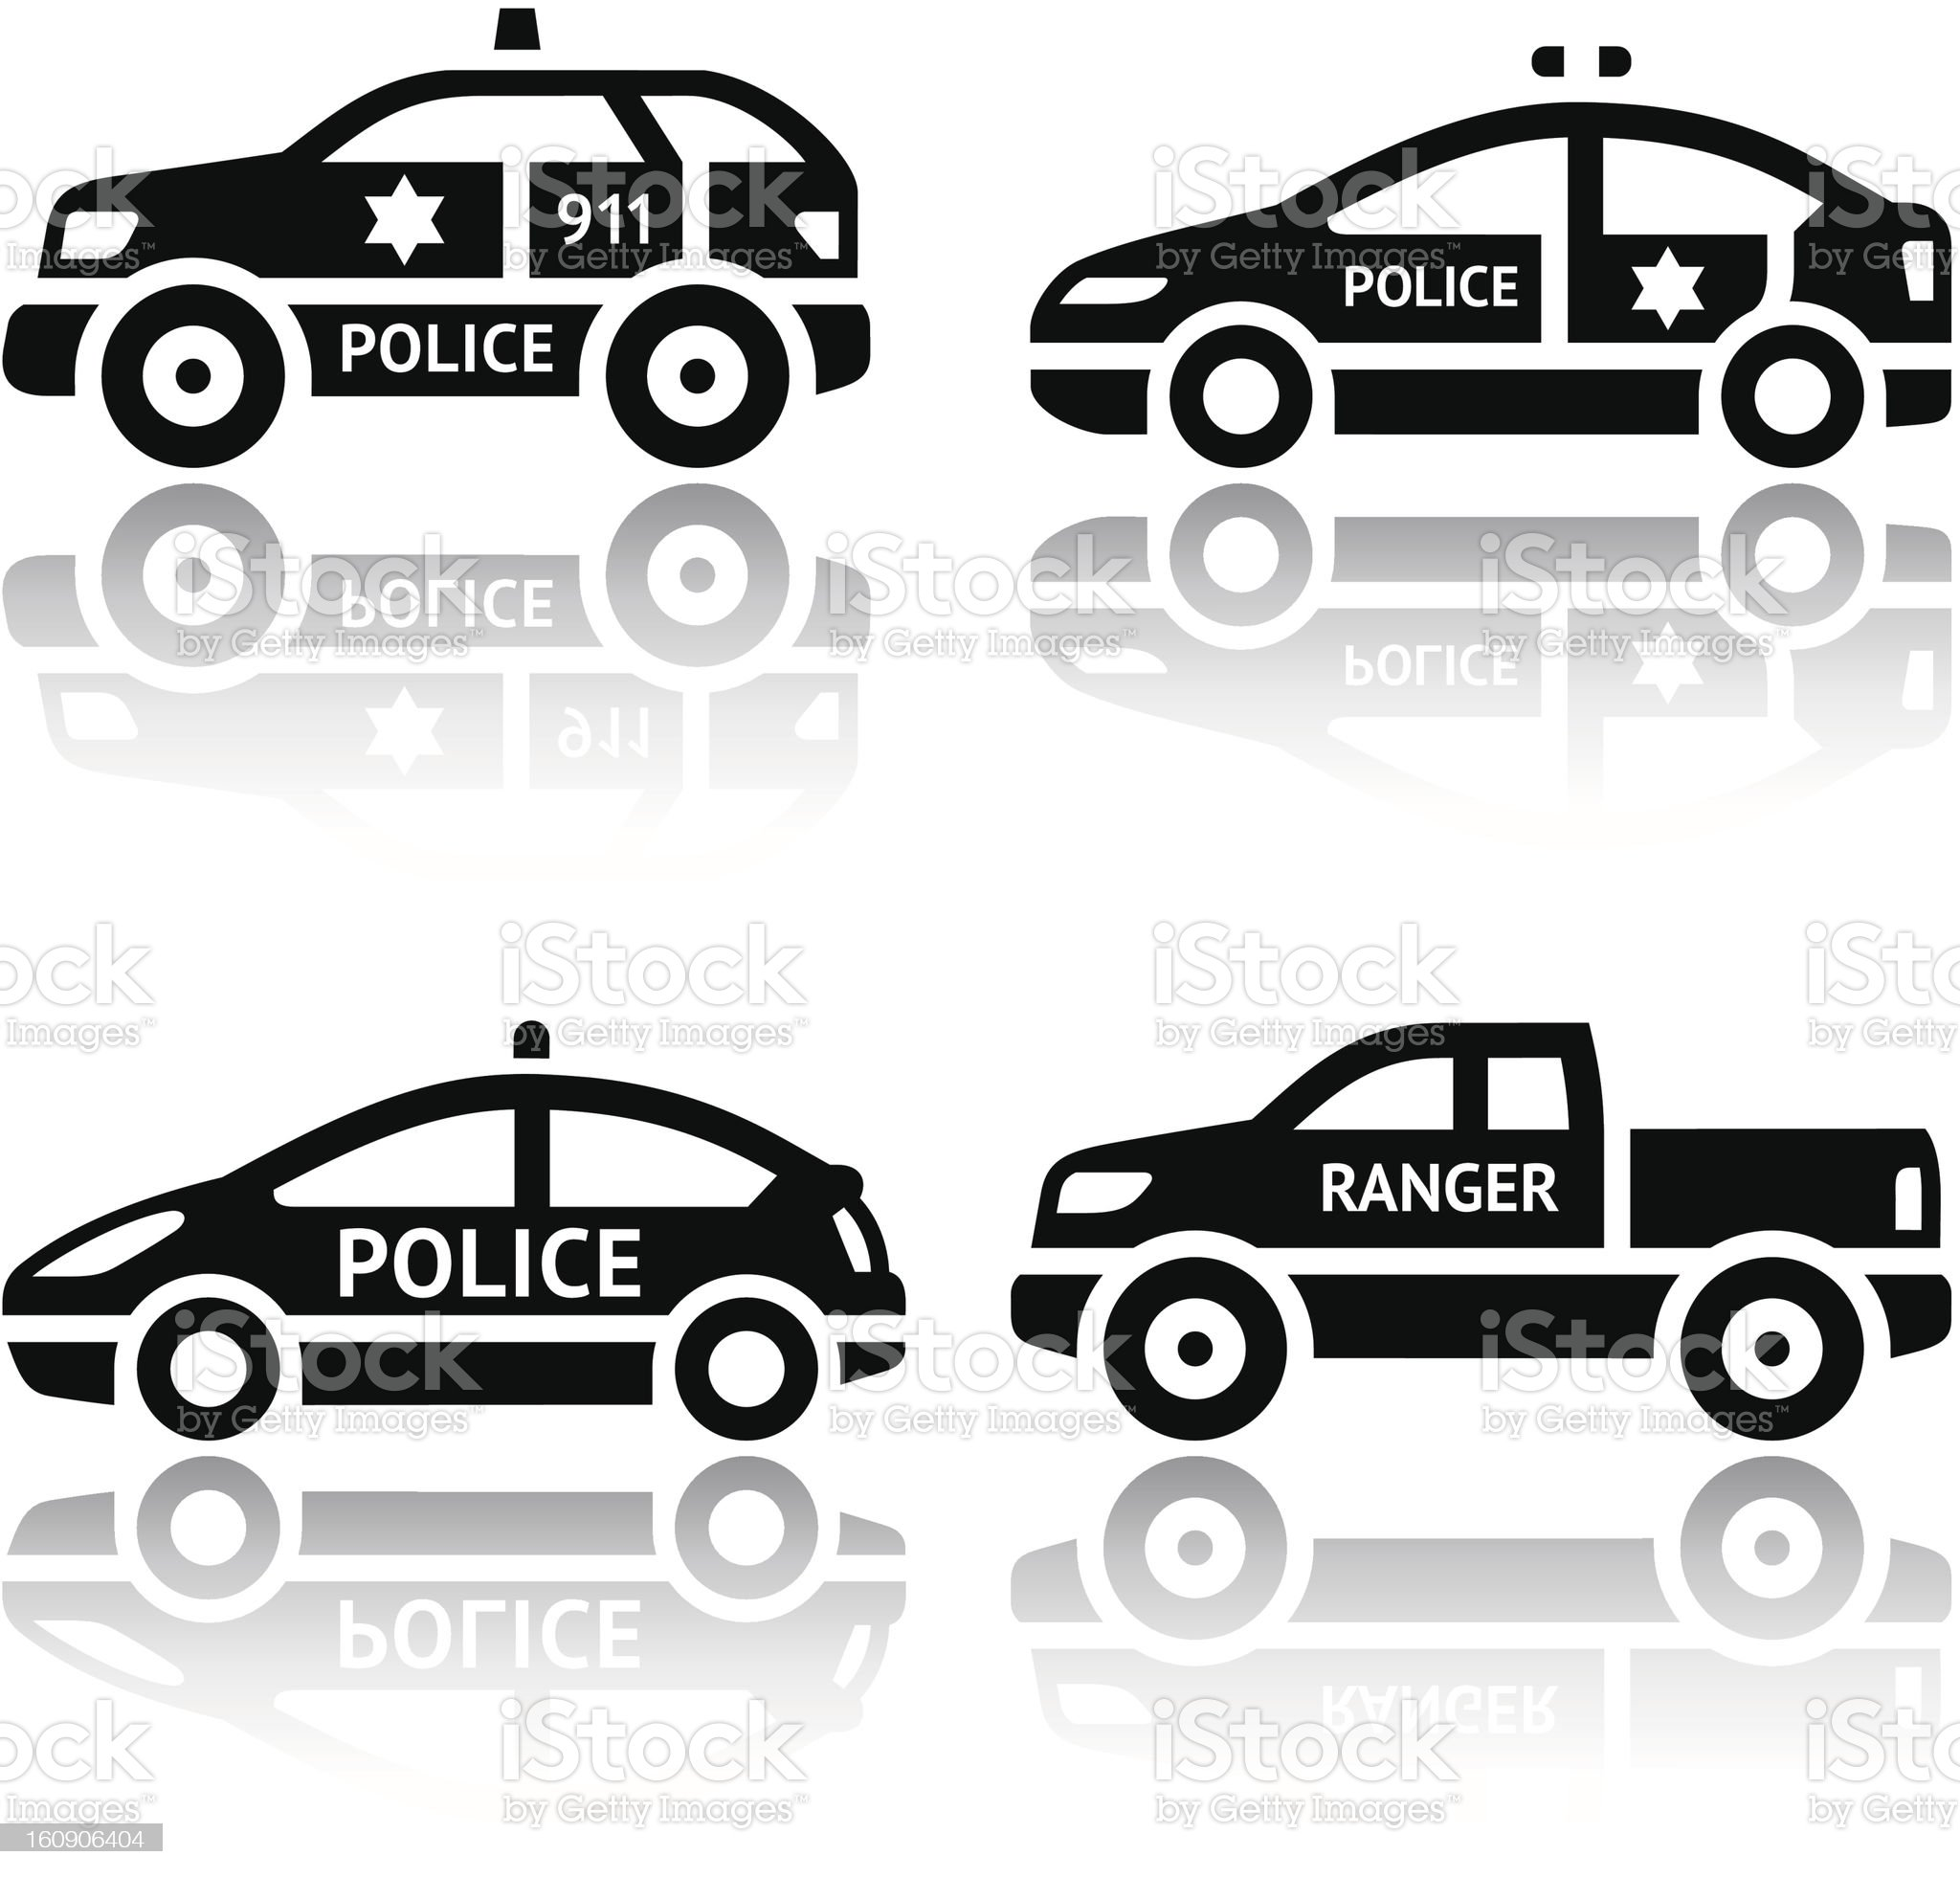 Set of transport icons - Police cars royalty-free stock photo